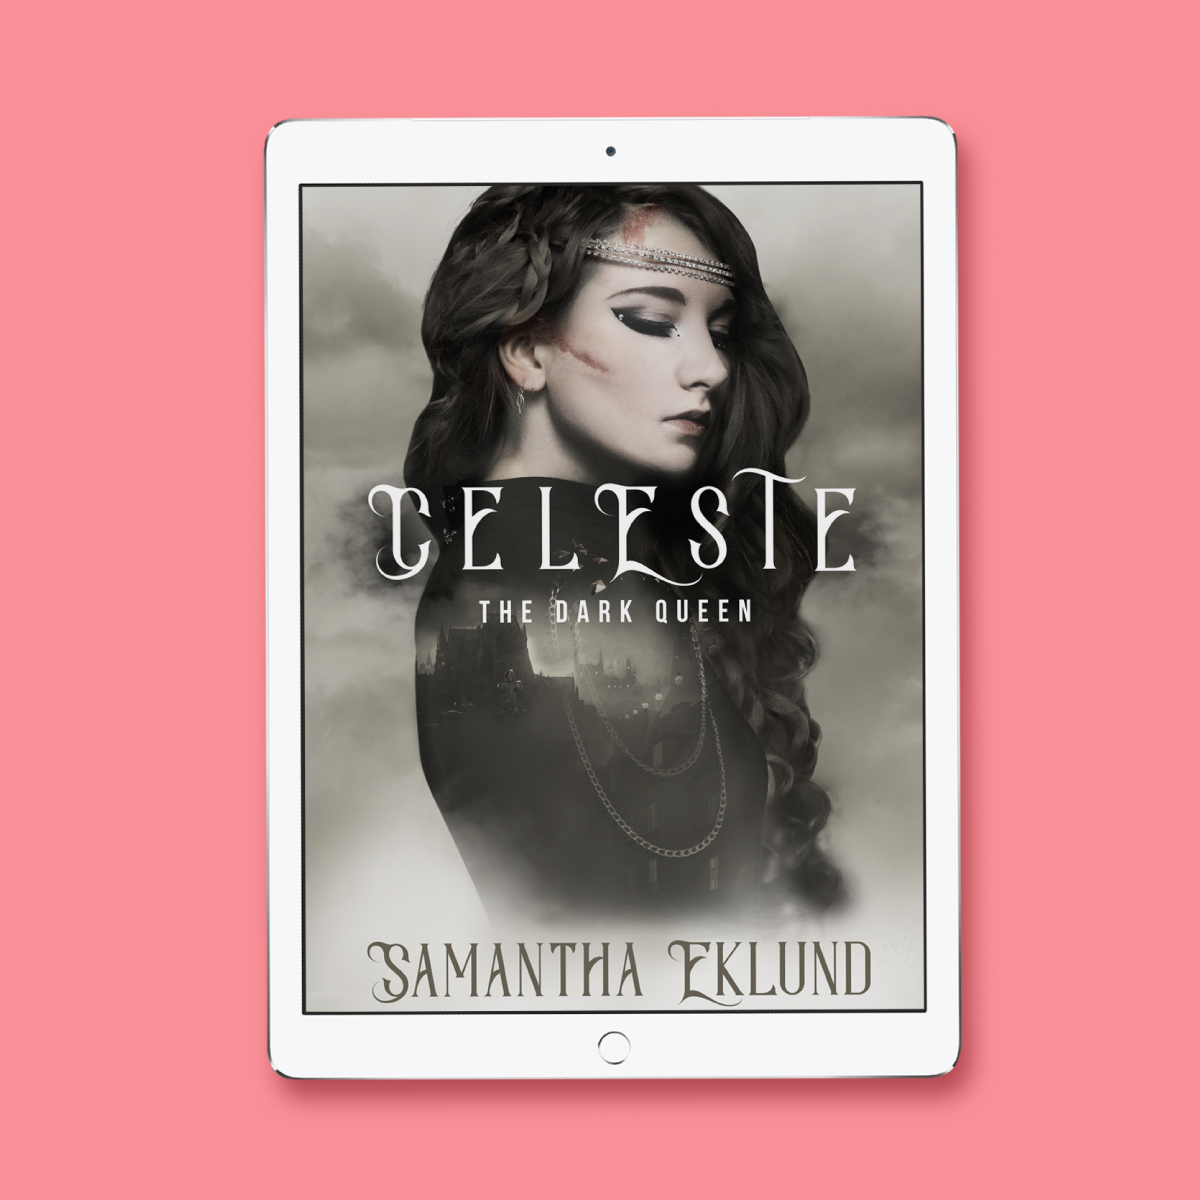 celeste the dark queen author samantha eklund